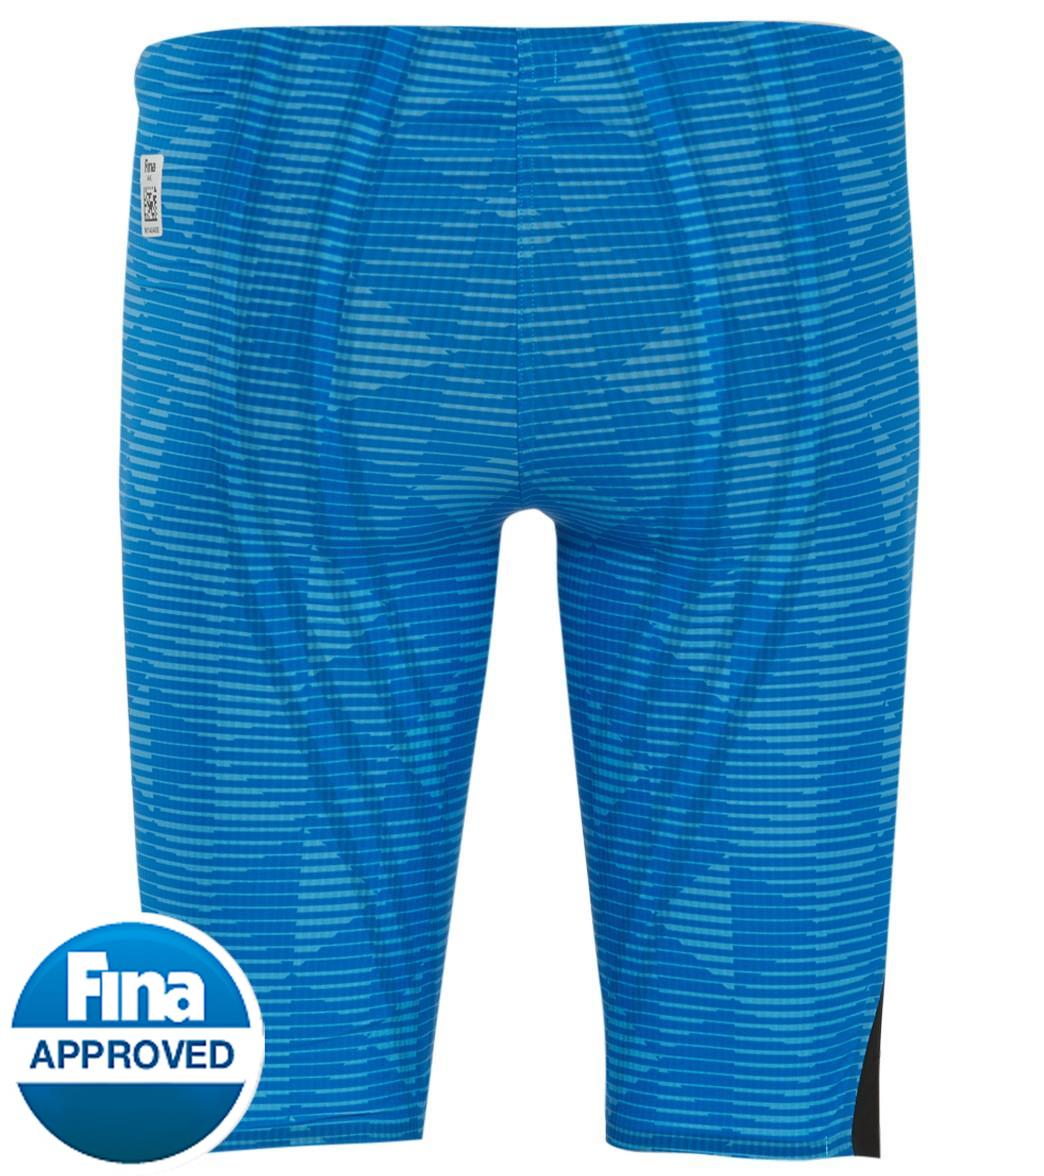 38eafff795e42 Mizuno Men s GX-Sonic III ST Elite Jammer Swimsuit at SwimOutlet.com ...